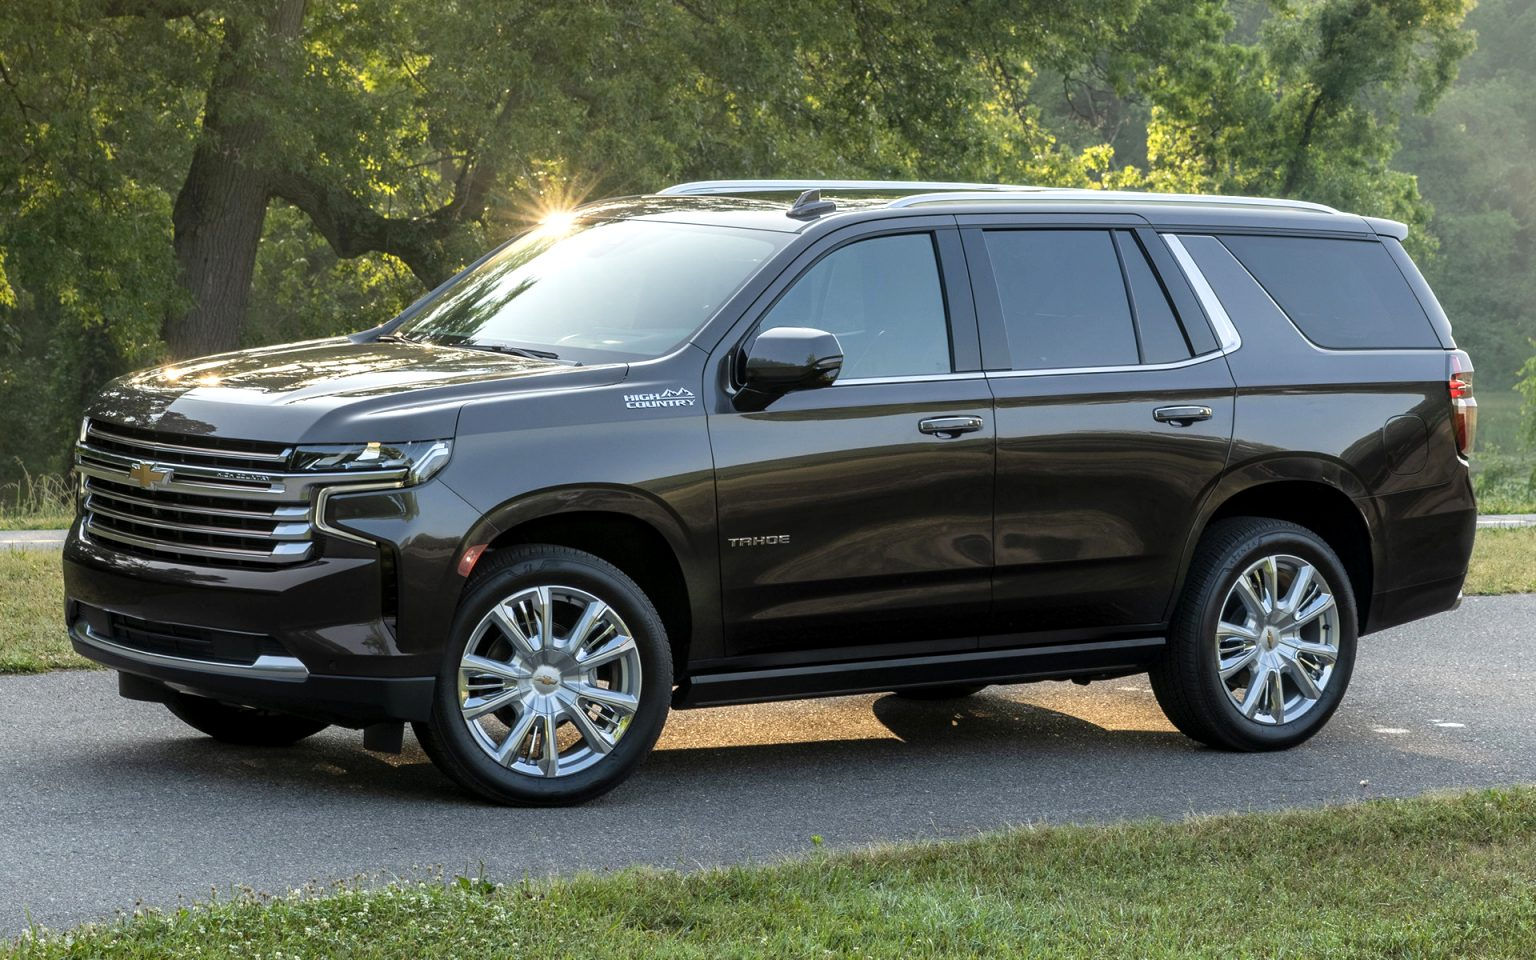 2021 chevrolet tahoe Photos